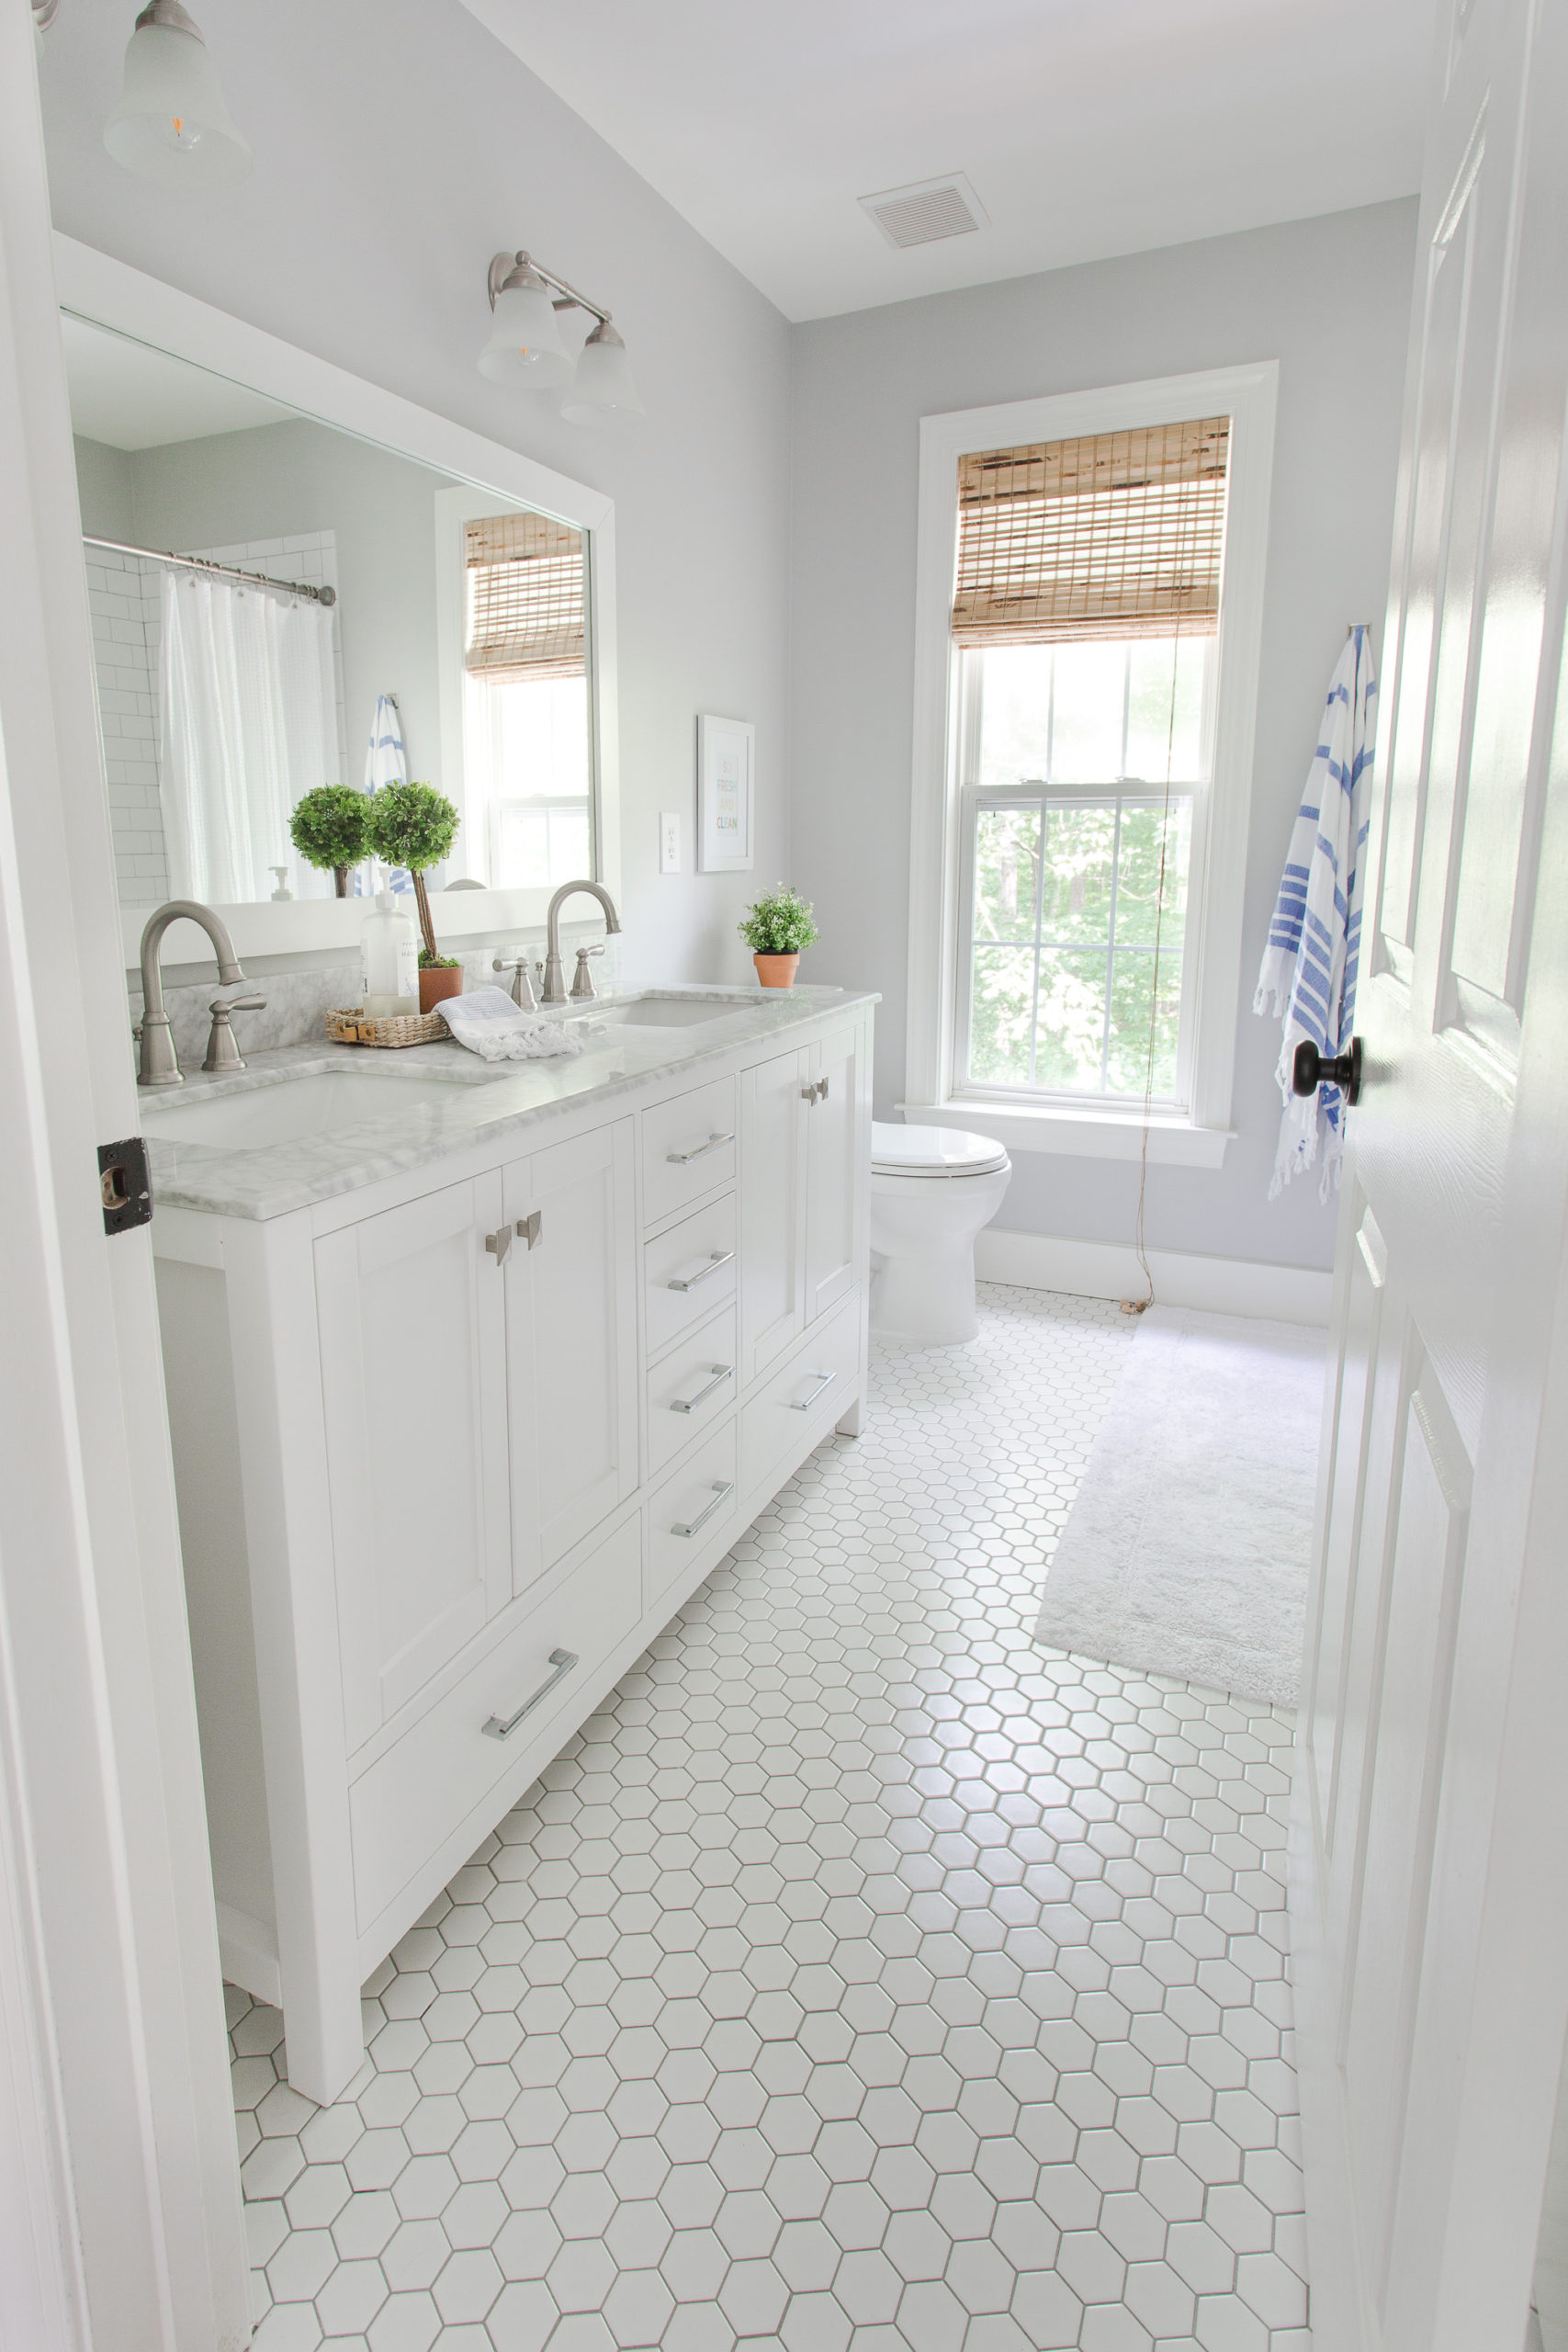 white bathroom with hexagon floor tile and gray walls.